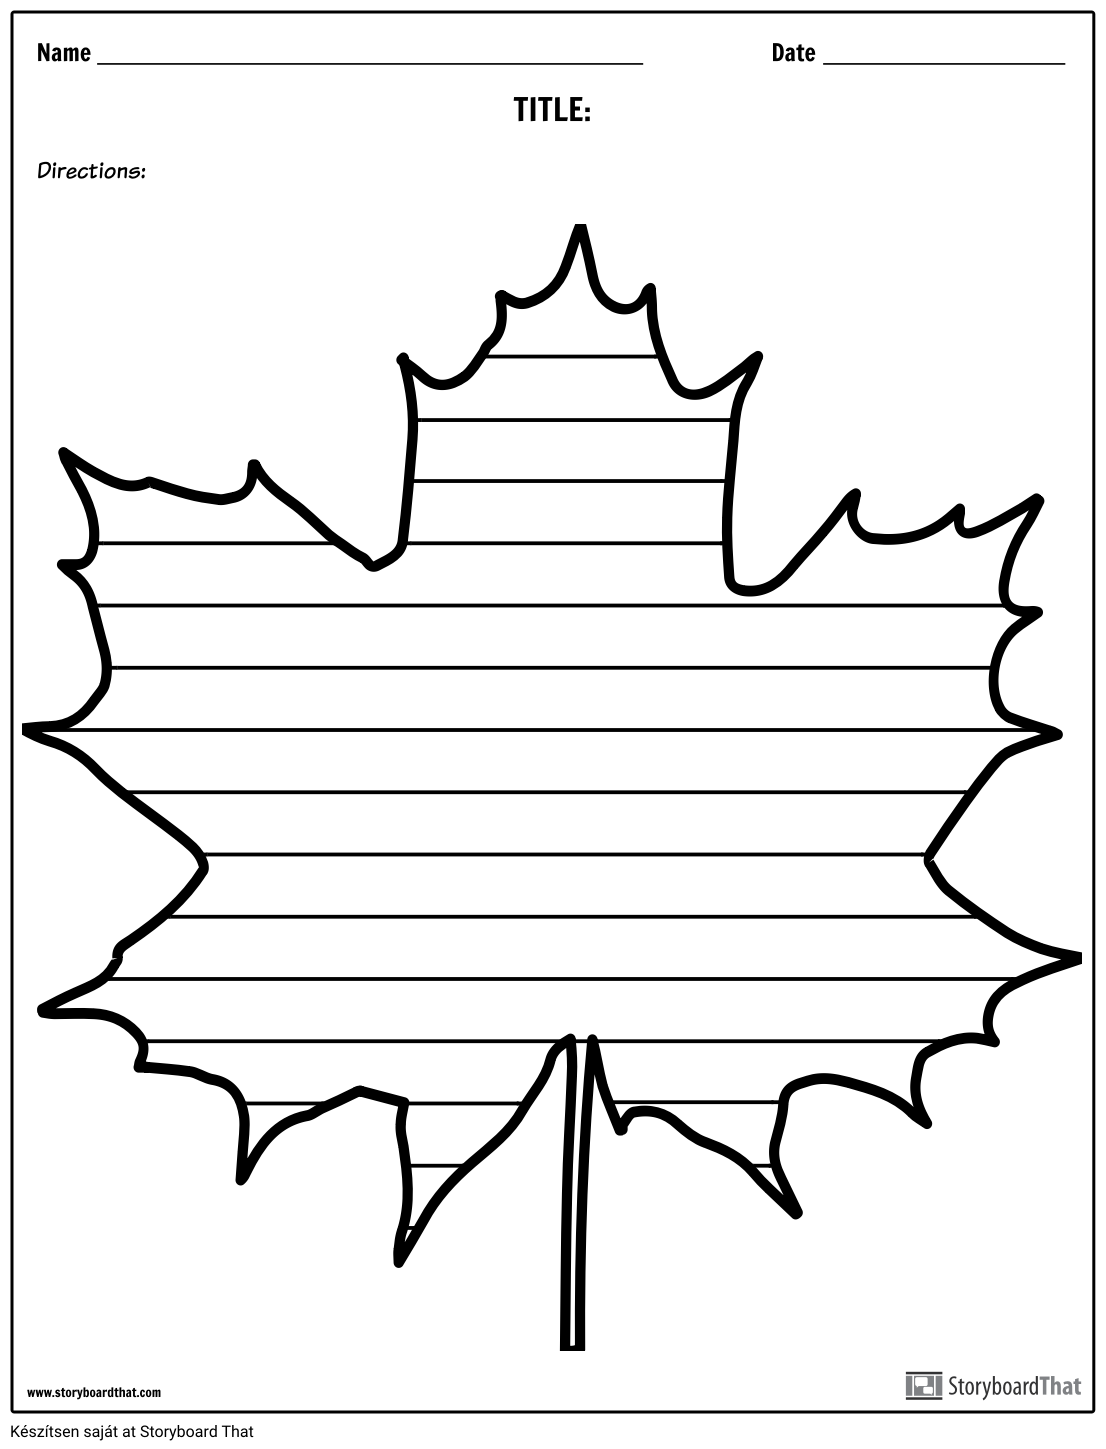 Kreatív Írás - Maple Leaf